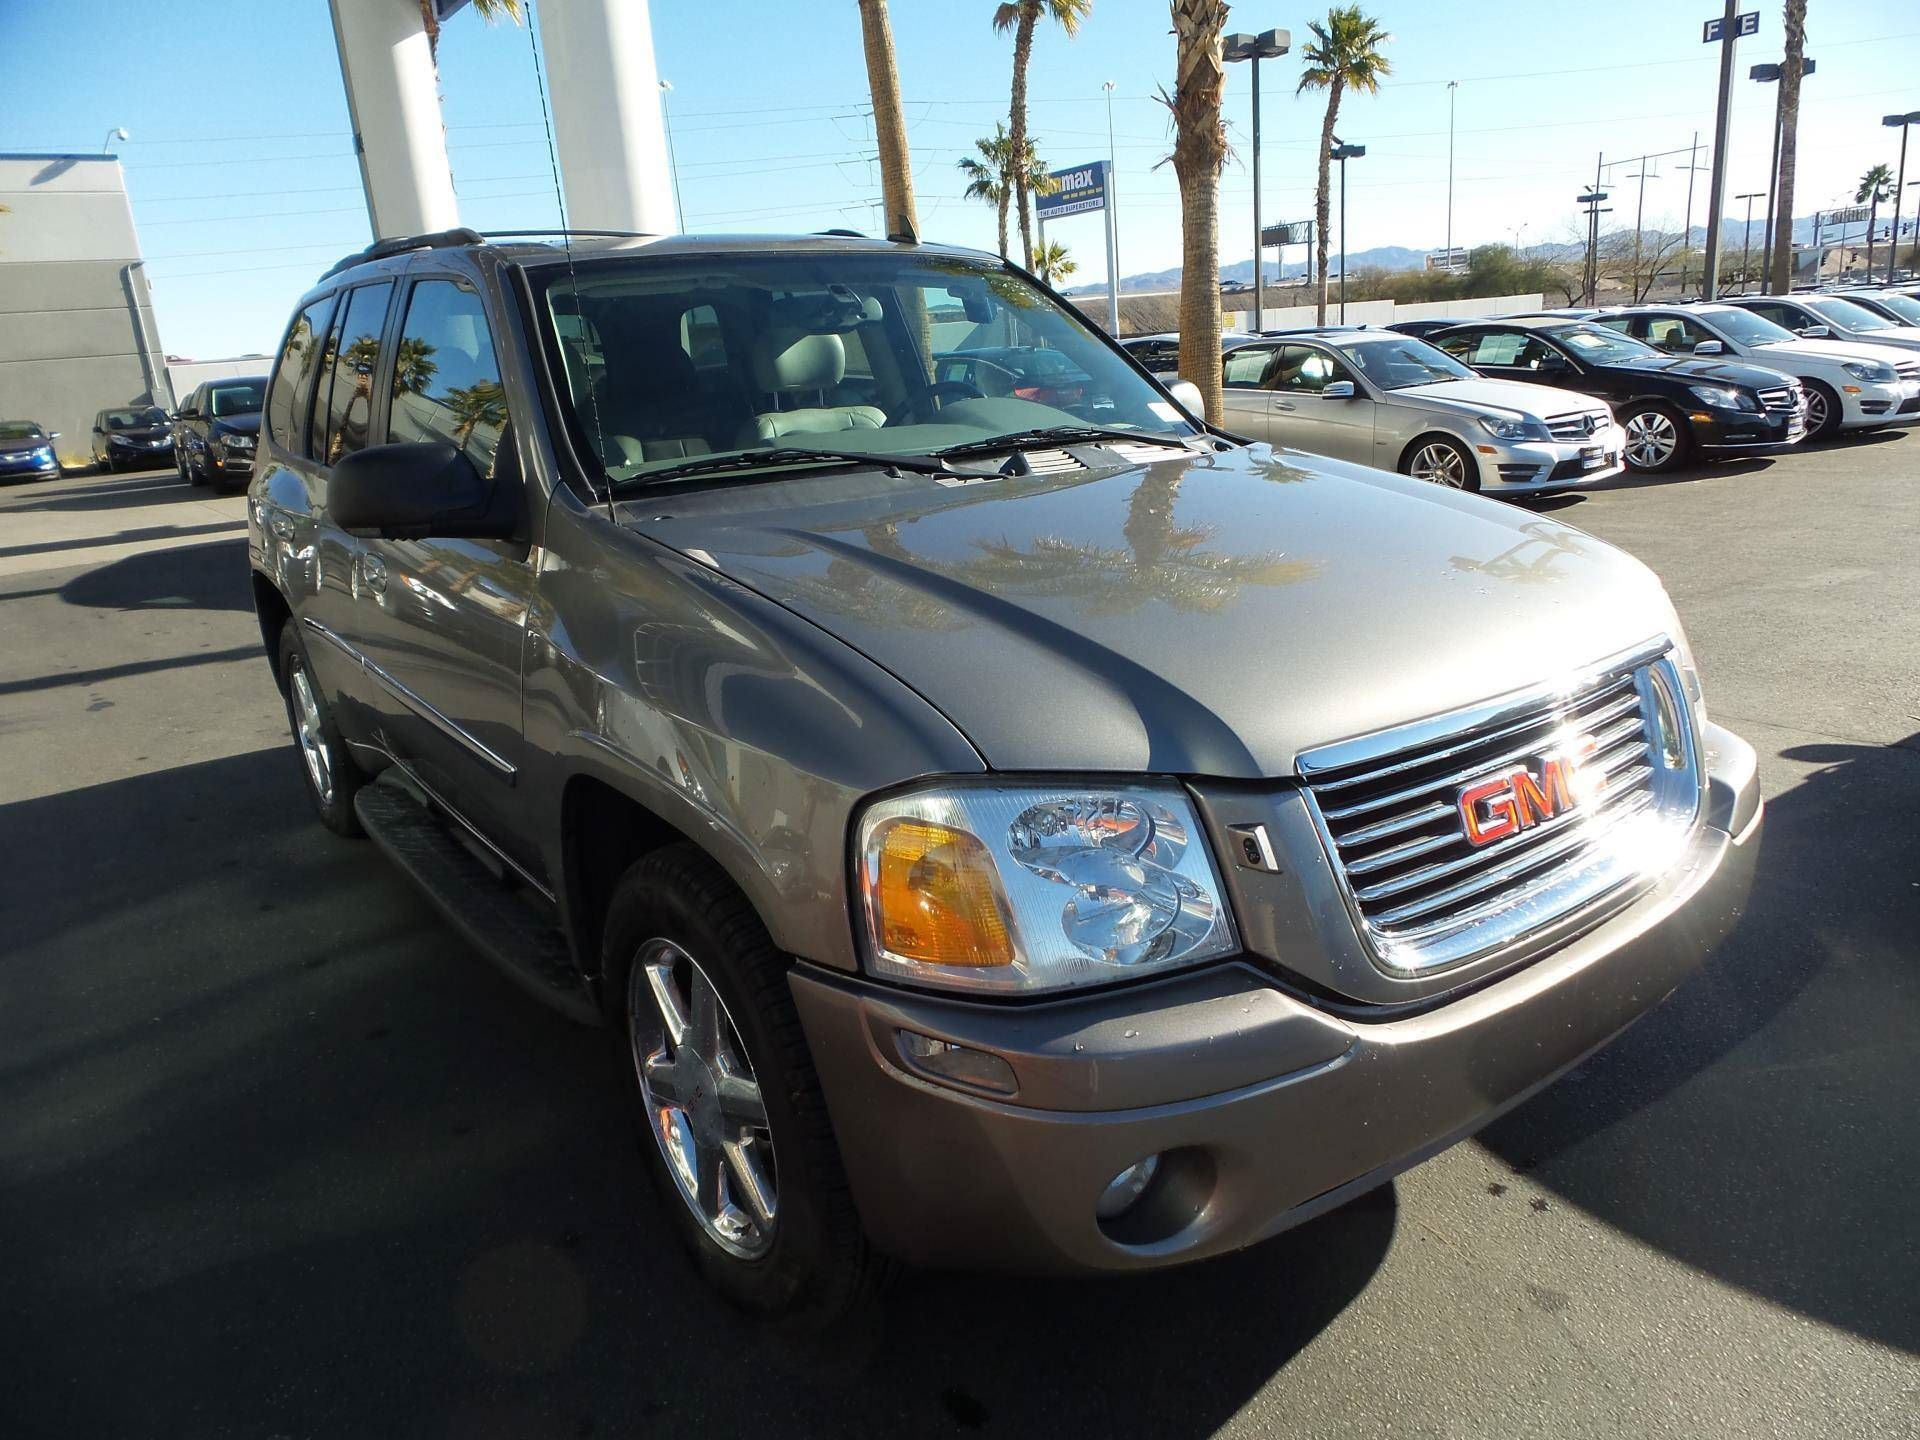 2008 Gmc Envoy Slt In Las Vegas Nv 12592072 At Carmax Com With